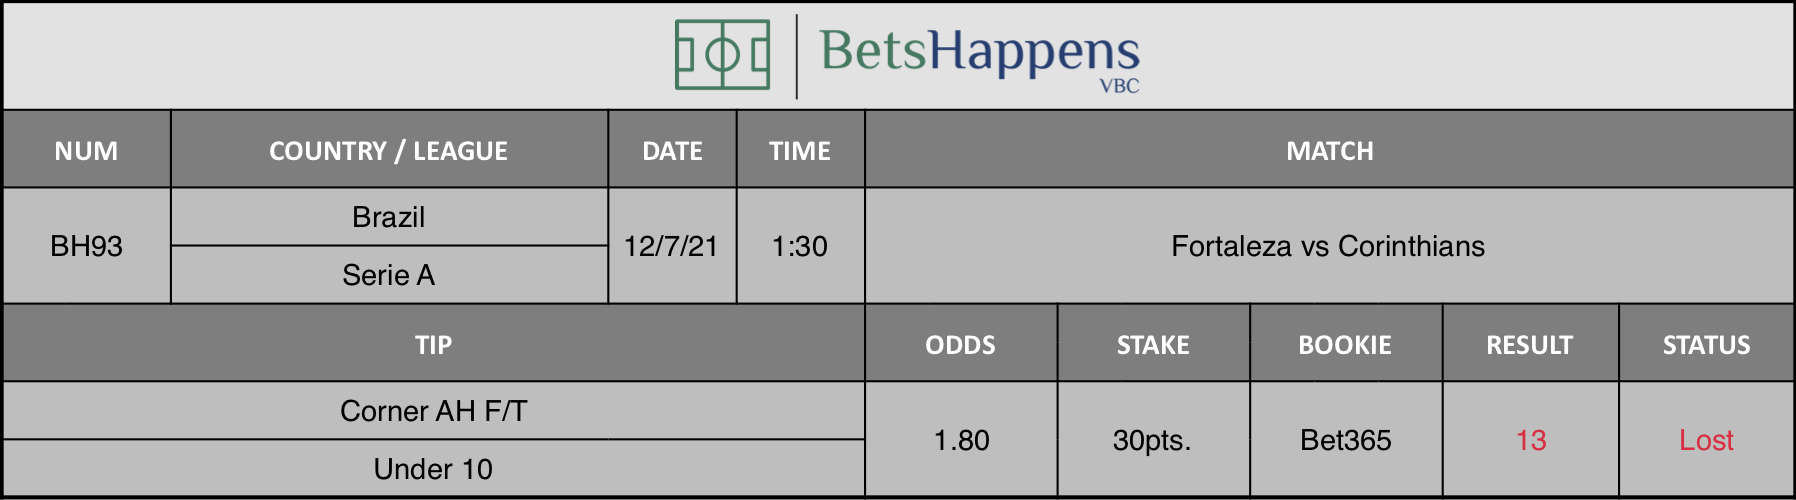 Results of our advice for the Fortaleza vs Corinthians match in which Corner AH F/T Under 10 is recommended.